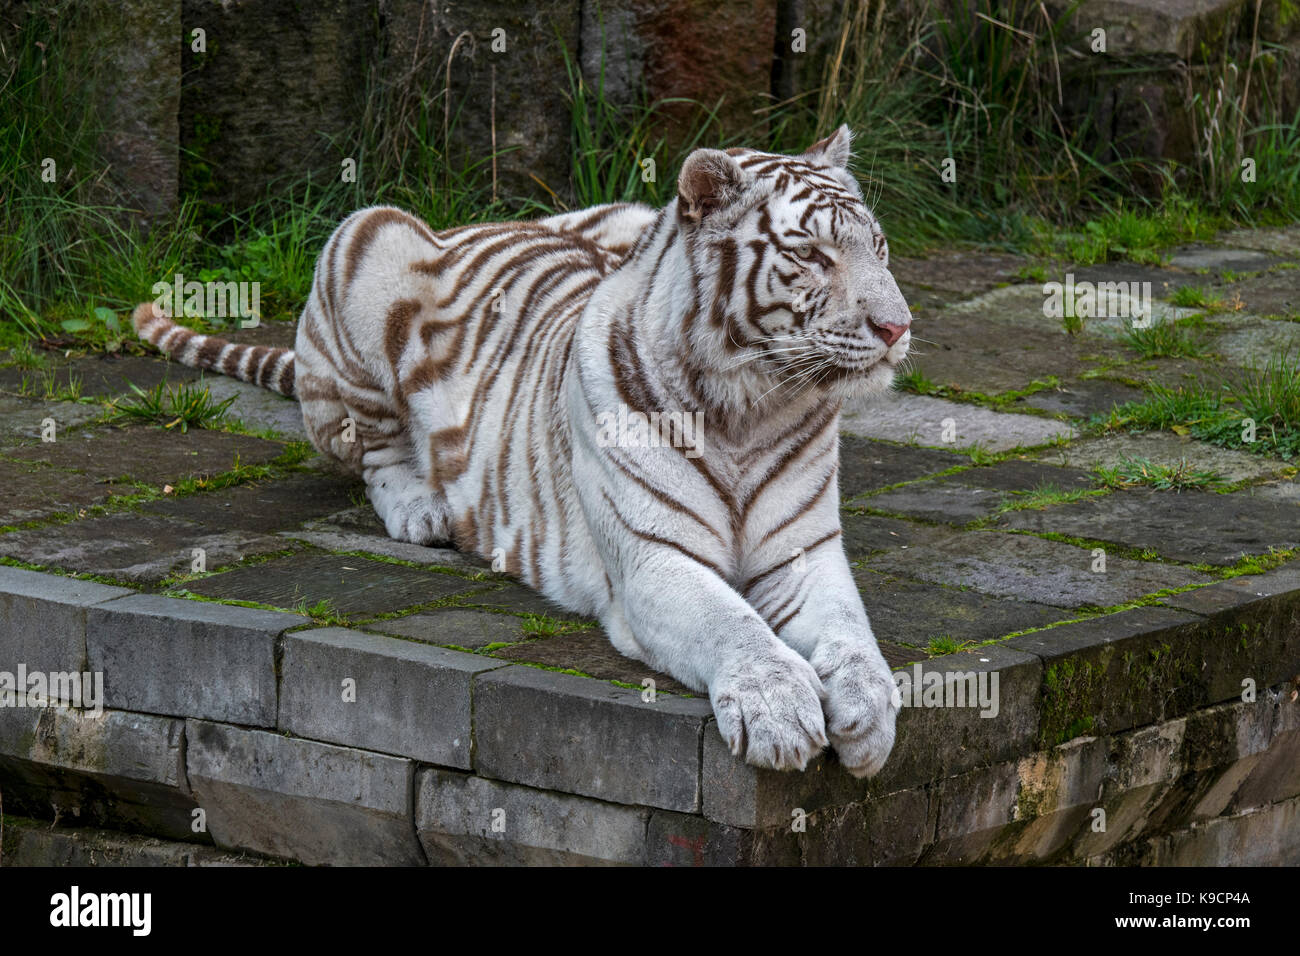 White tiger / bleached tiger (Panthera tigris) pigmentation variant of the Bengal tiger, native to India Stock Photo